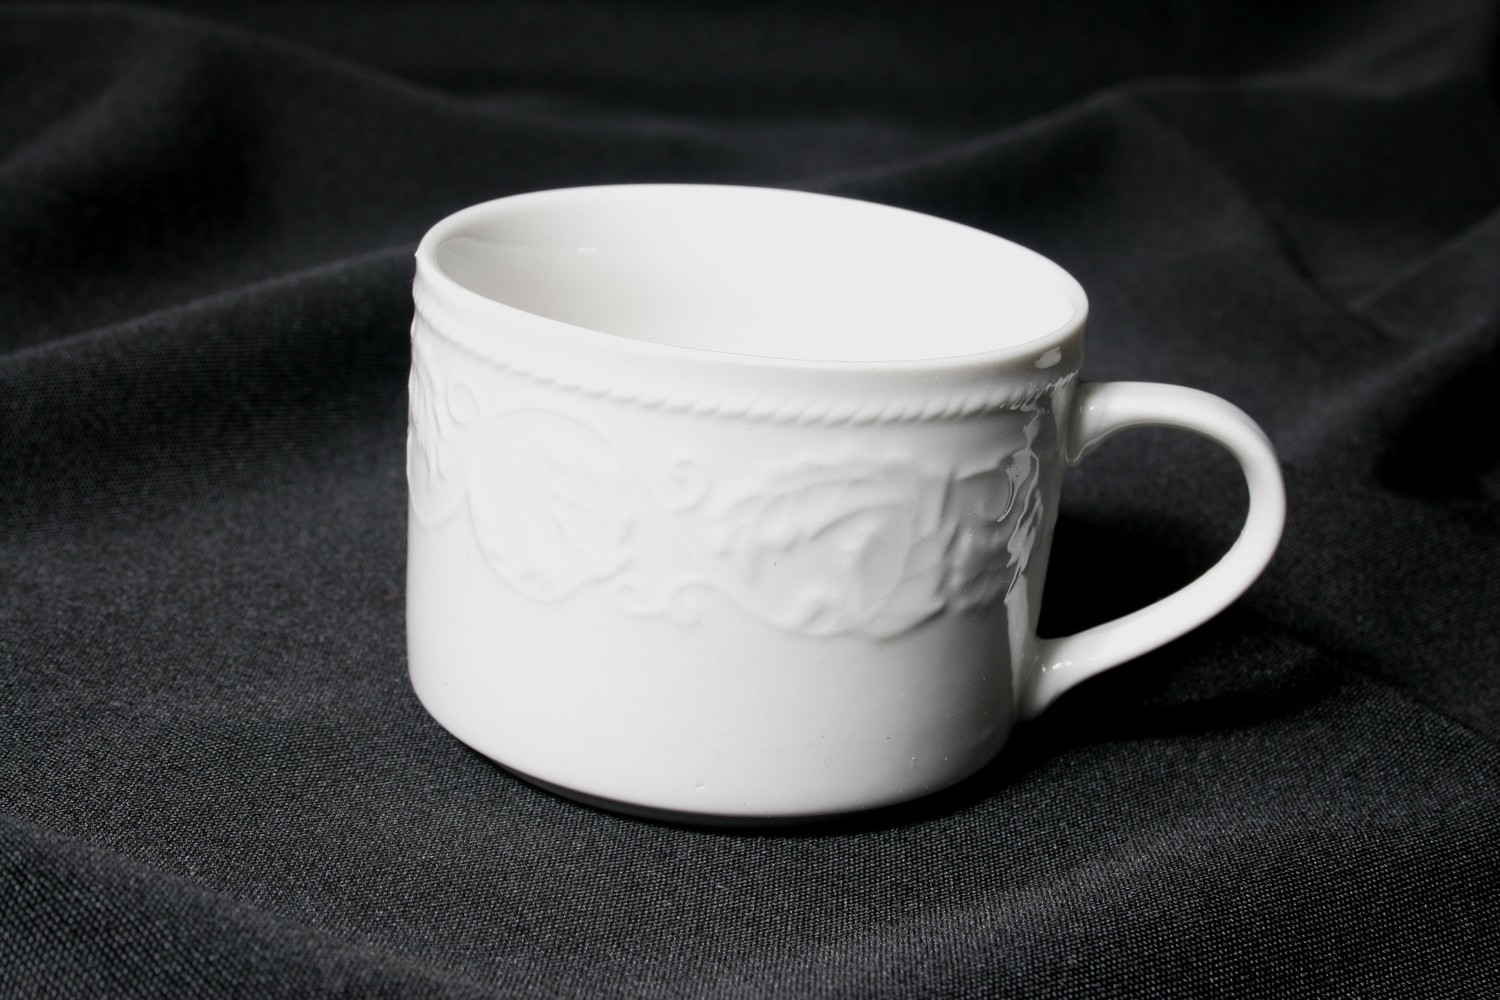 White with Design: Coffee Cup